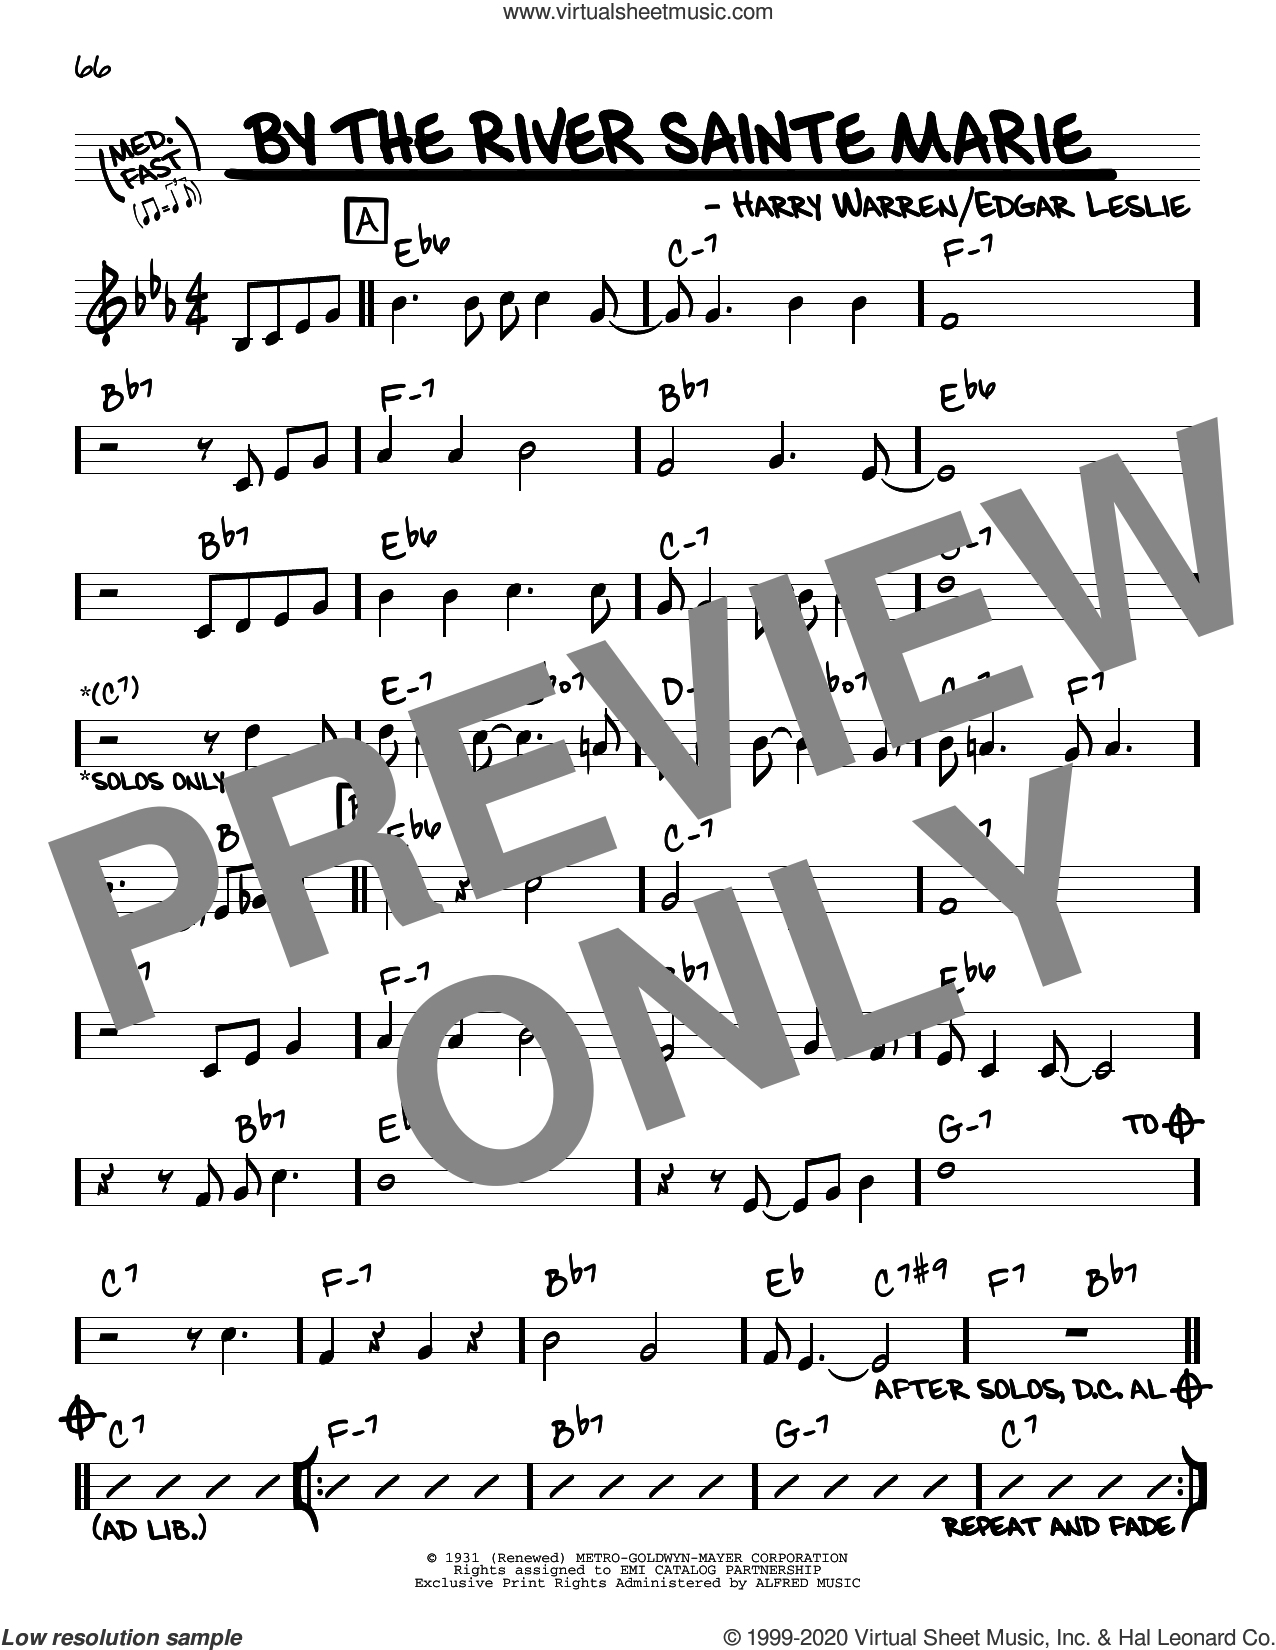 By The River Sainte Marie sheet music for voice and other instruments (real book) by Paul Desmond, Edgar Leslie and Harry Warren, intermediate skill level